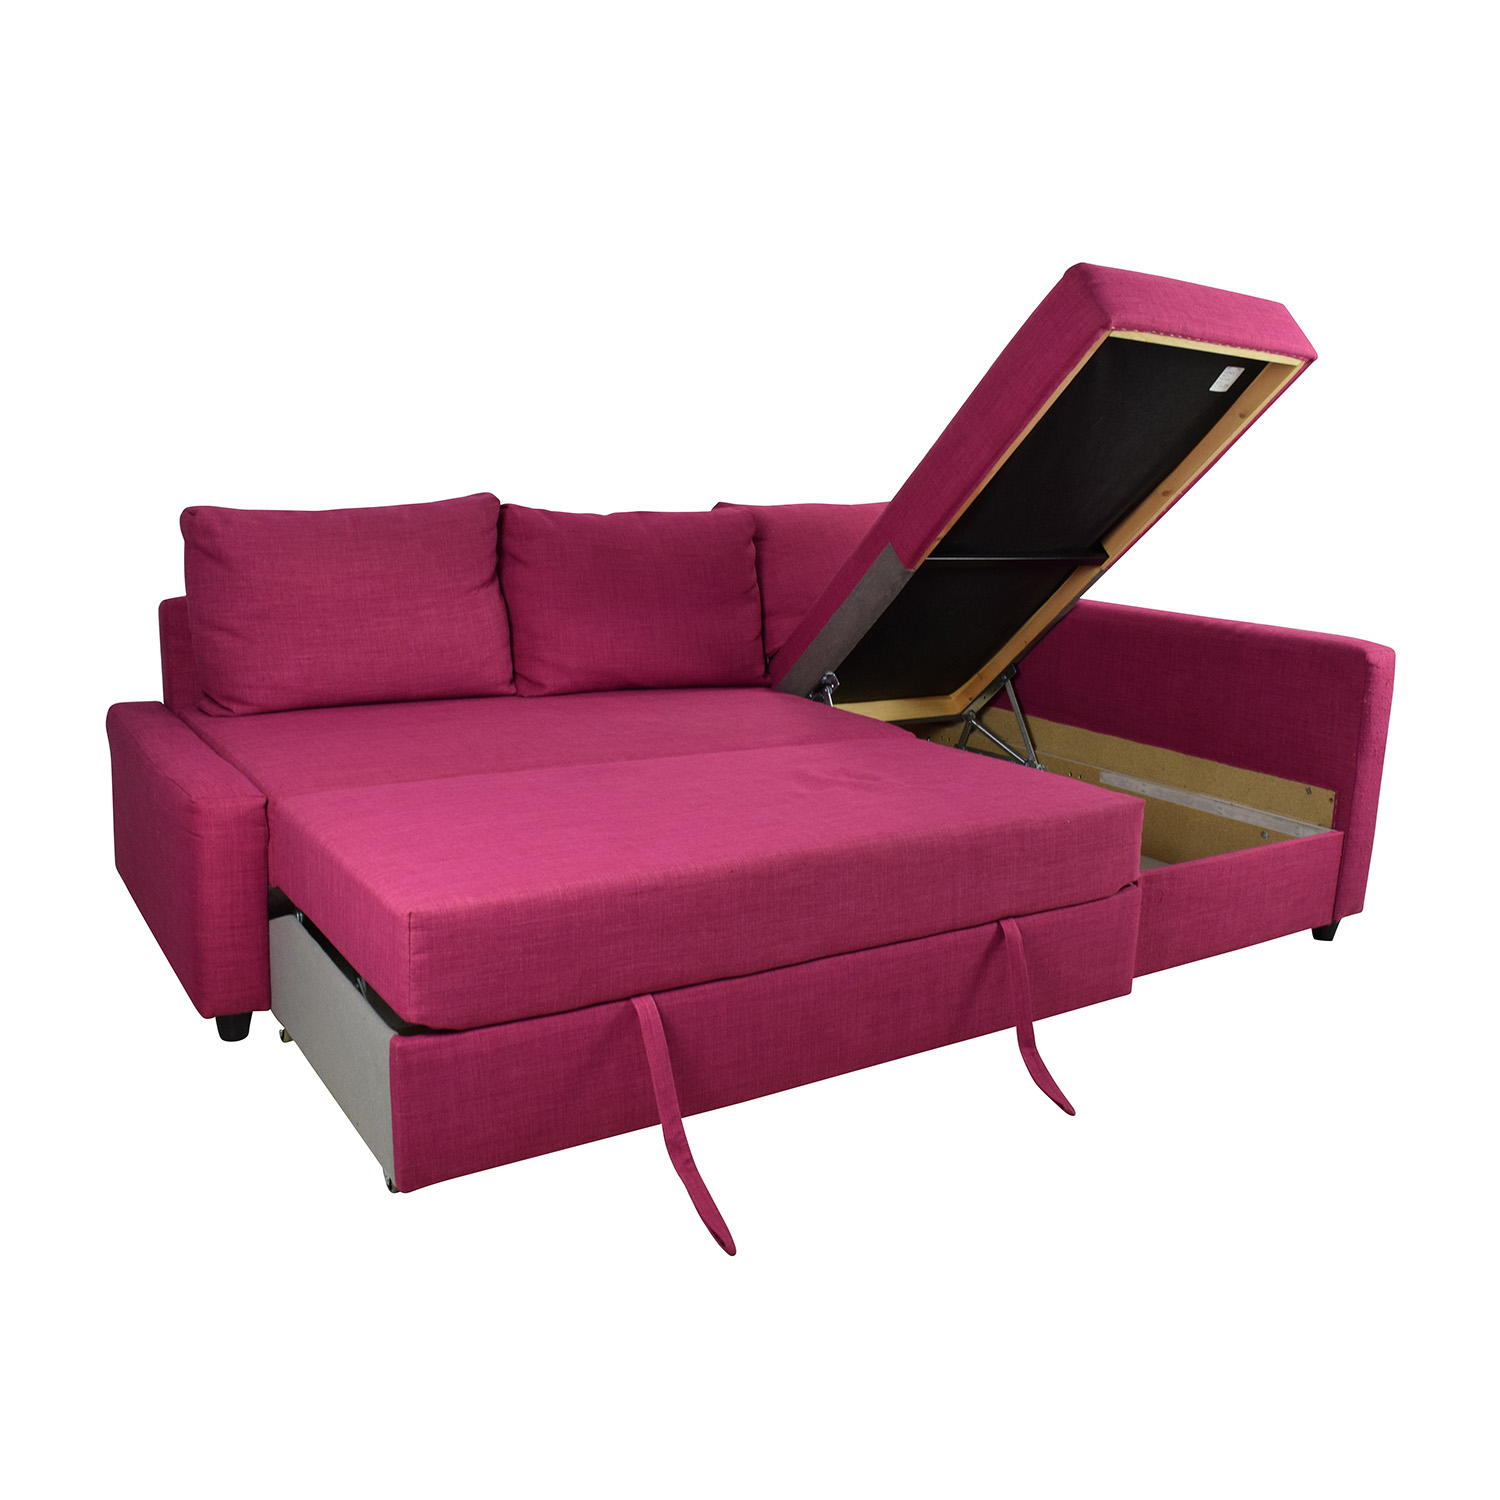 pink sofa ikea 66 off ikea friheten pink sleeper sofa sofas thesofa. Black Bedroom Furniture Sets. Home Design Ideas